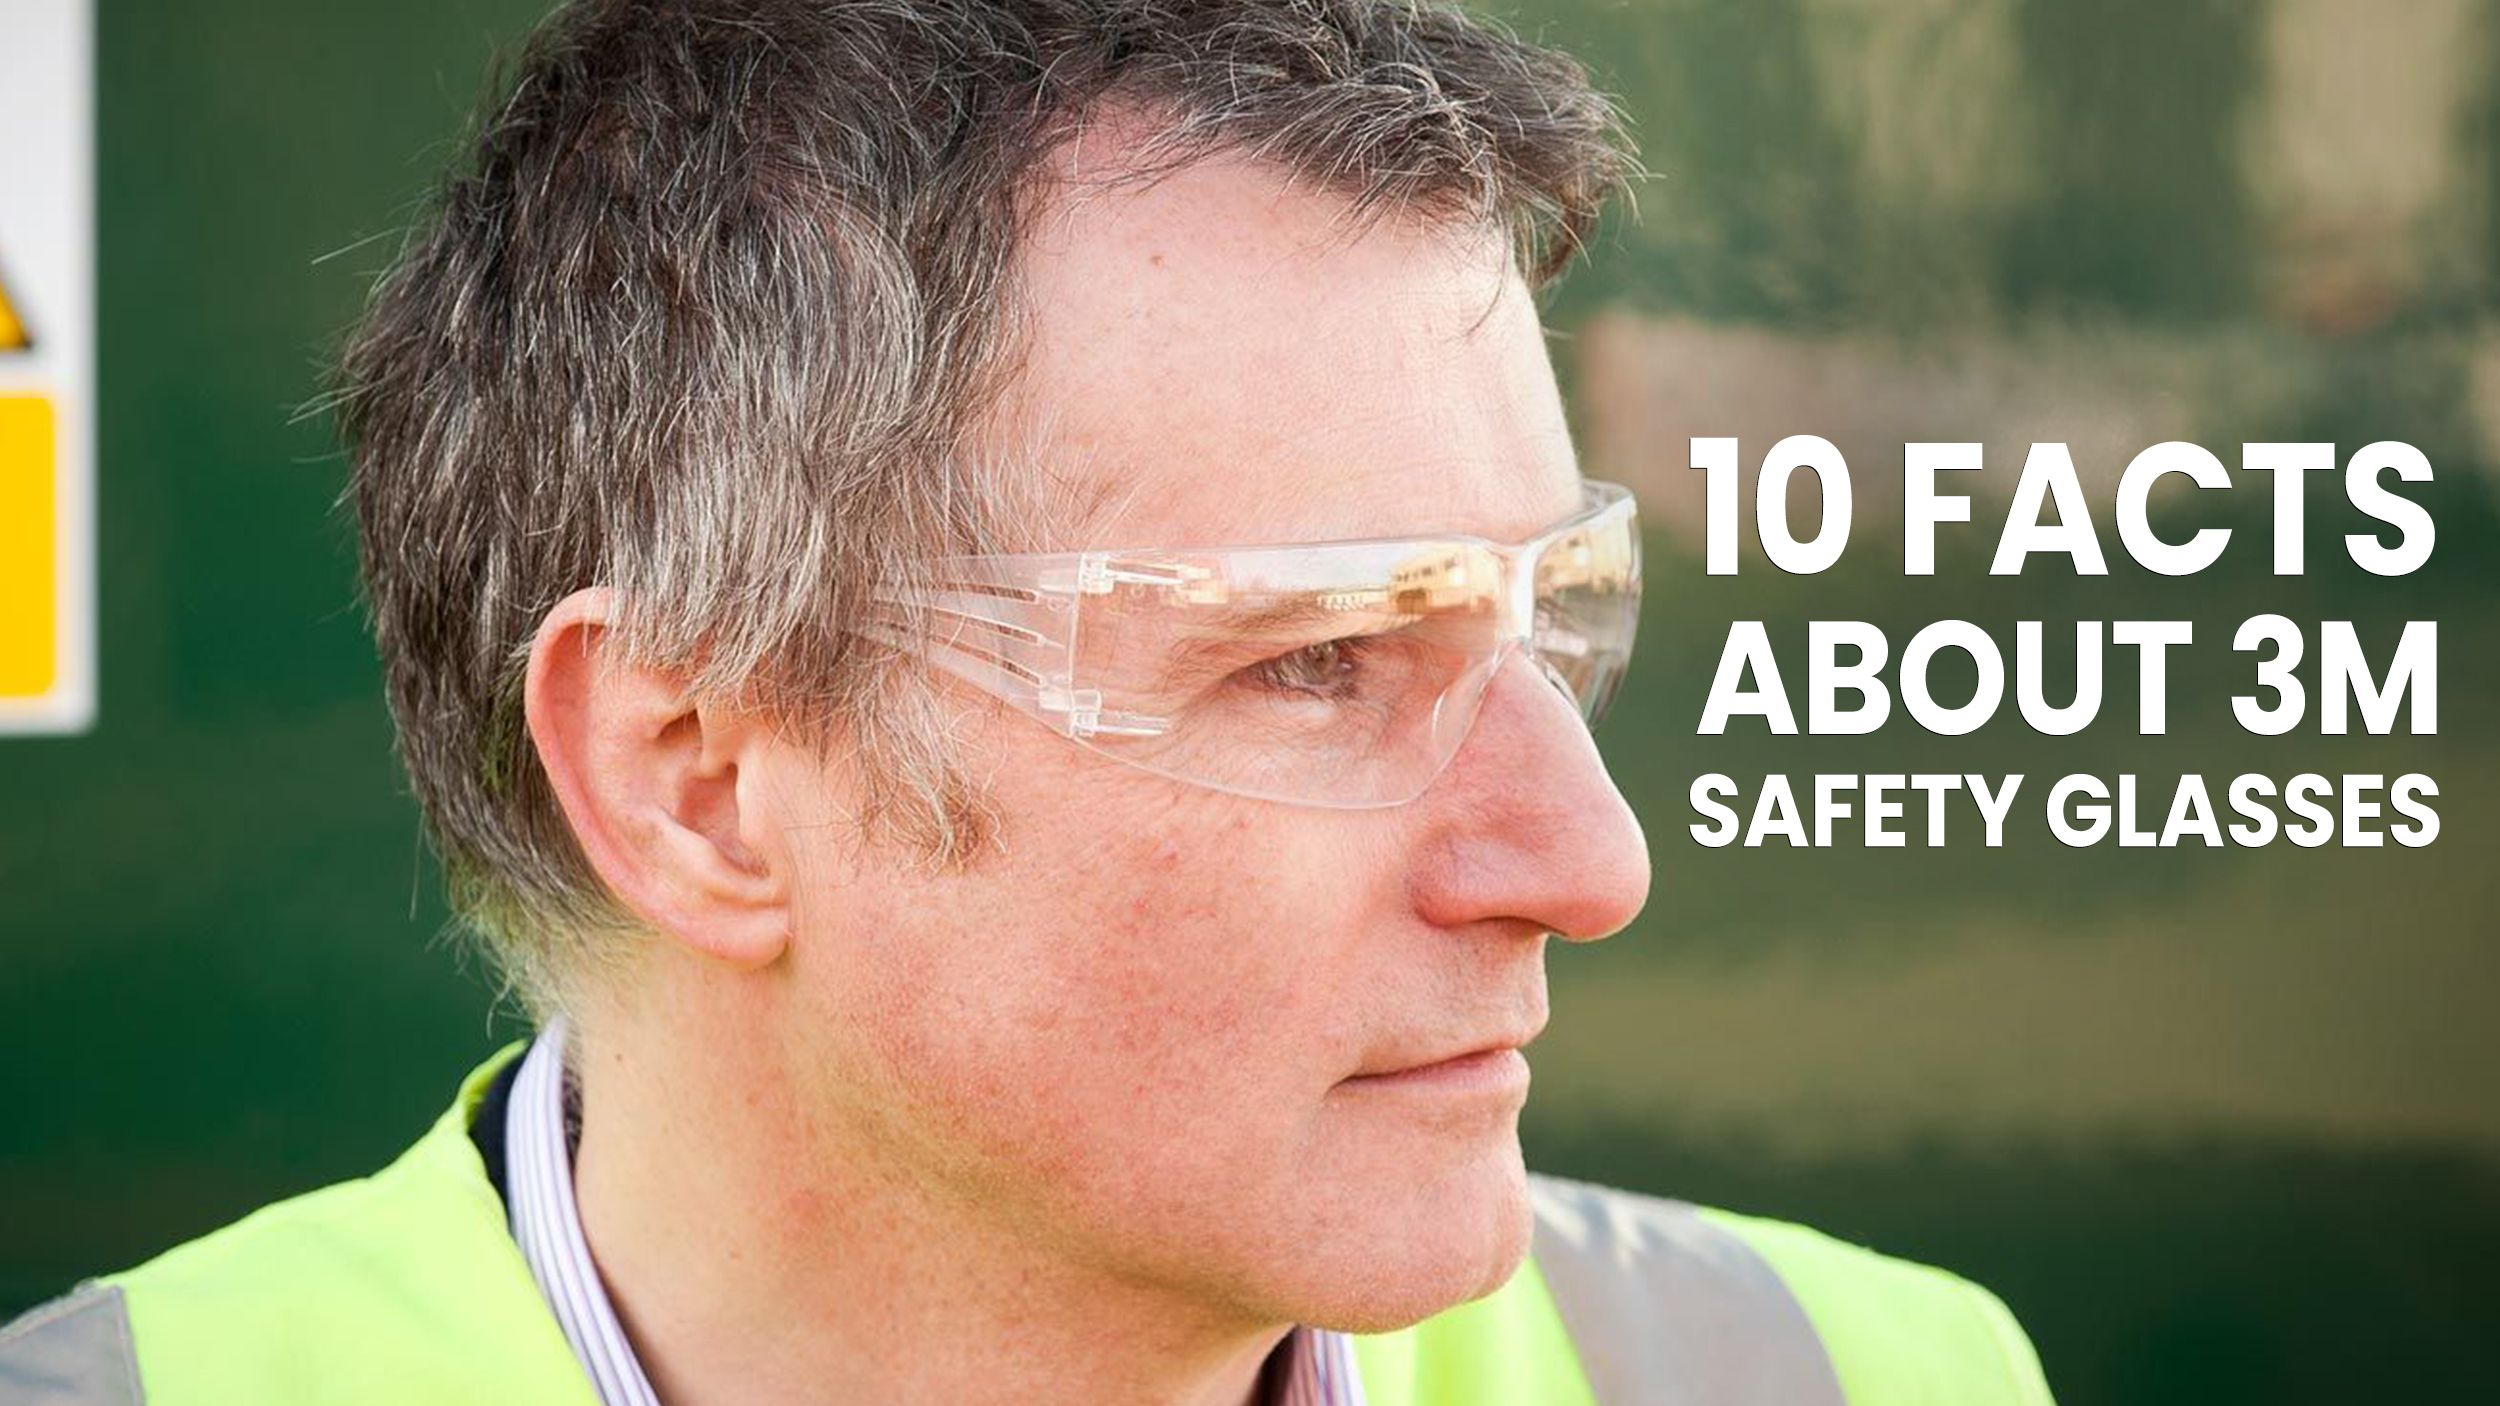 10 Facts About 3M Safety Glasses Header